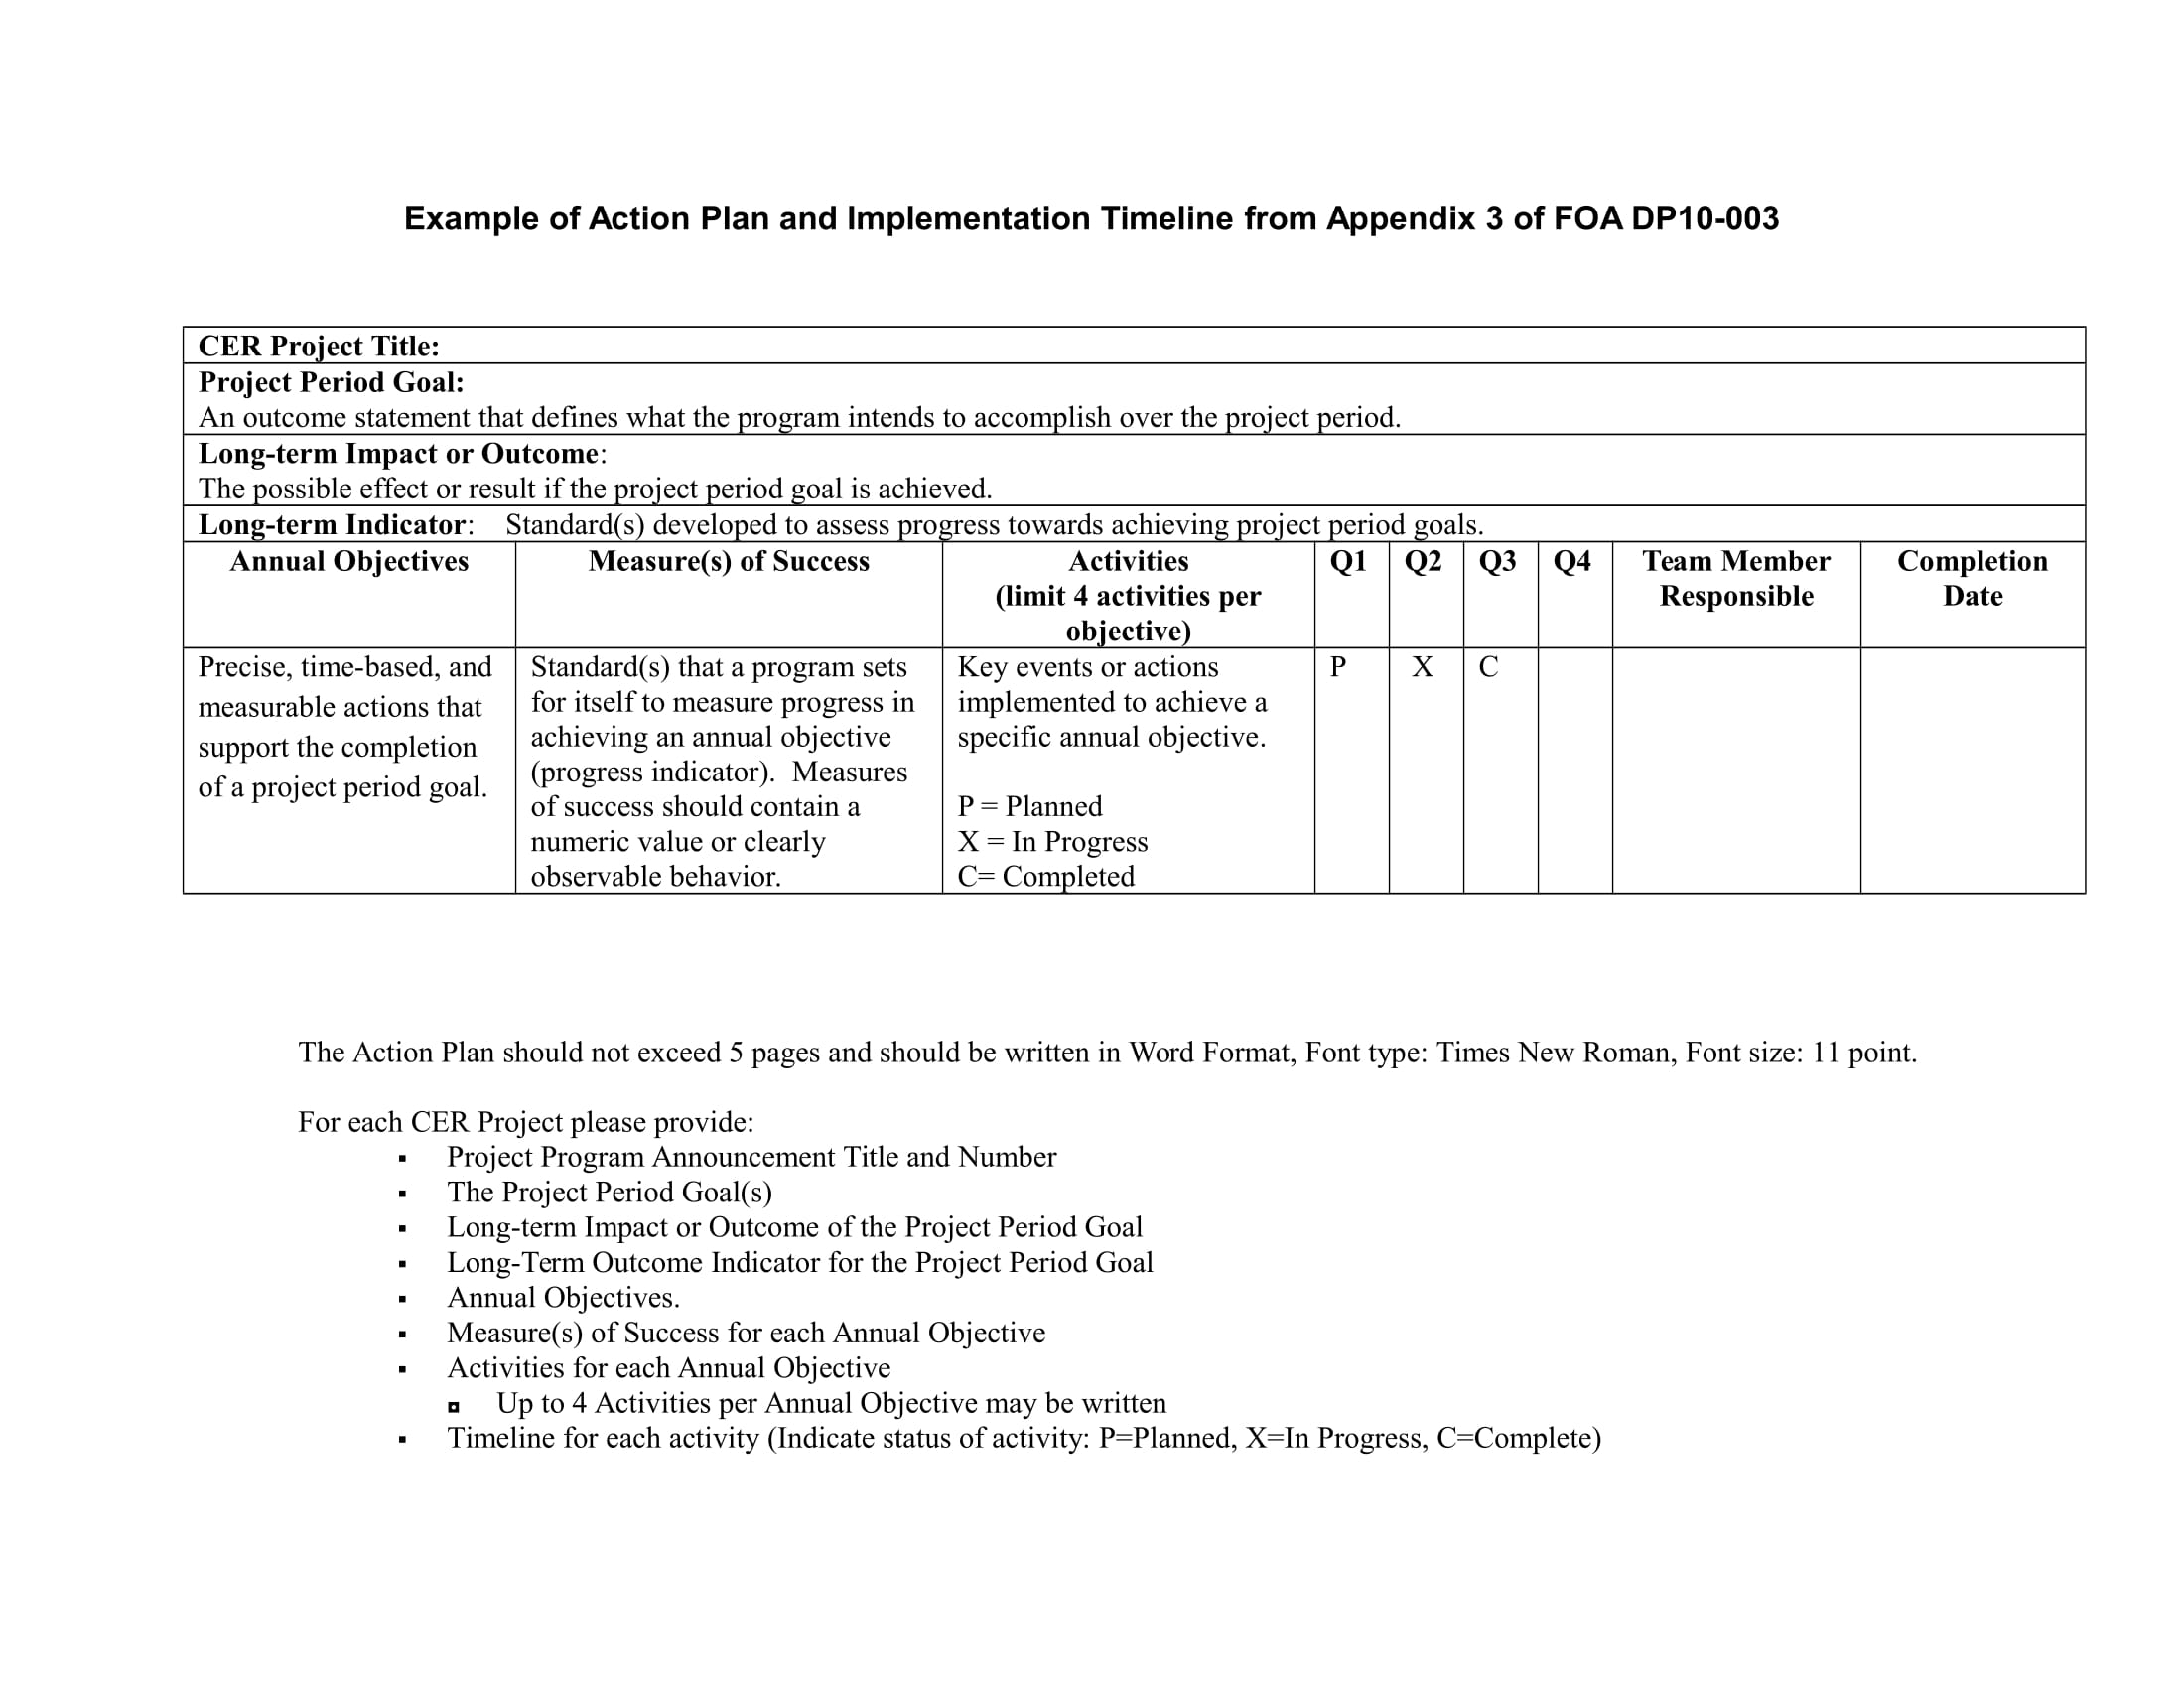 action plan and implementation timeline example 1